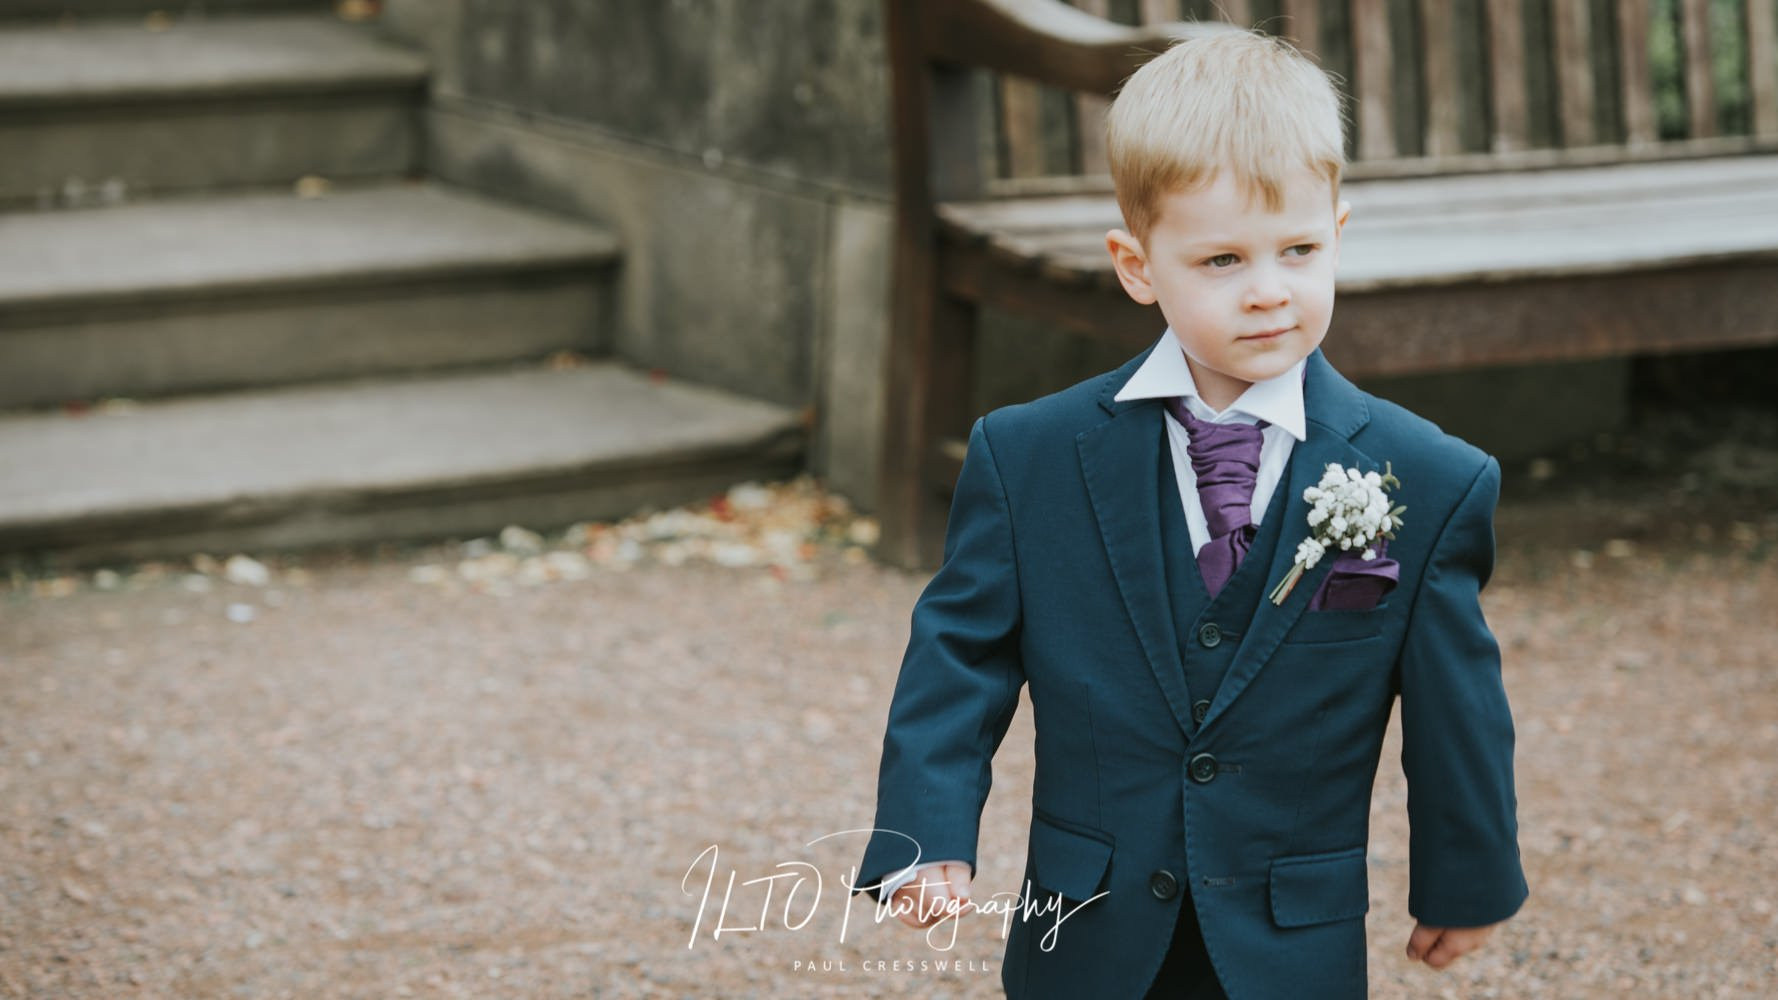 Suits for page boy wedding photographer